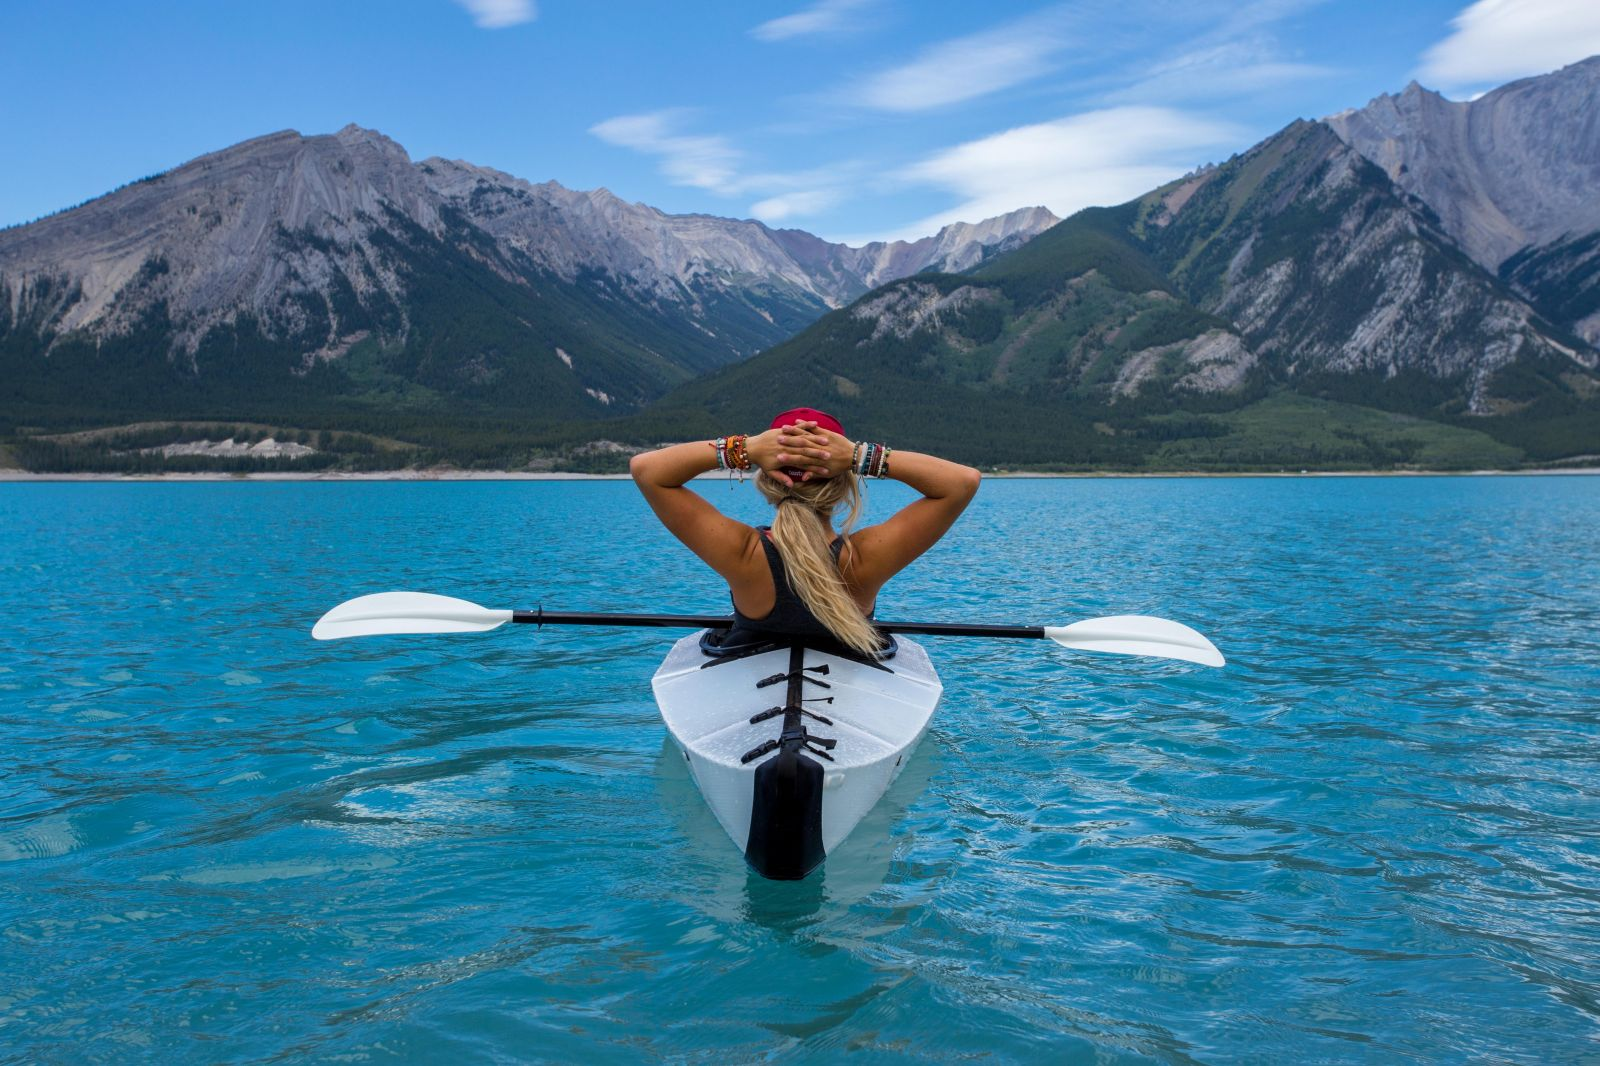 a woman kayaking looking at the mountains